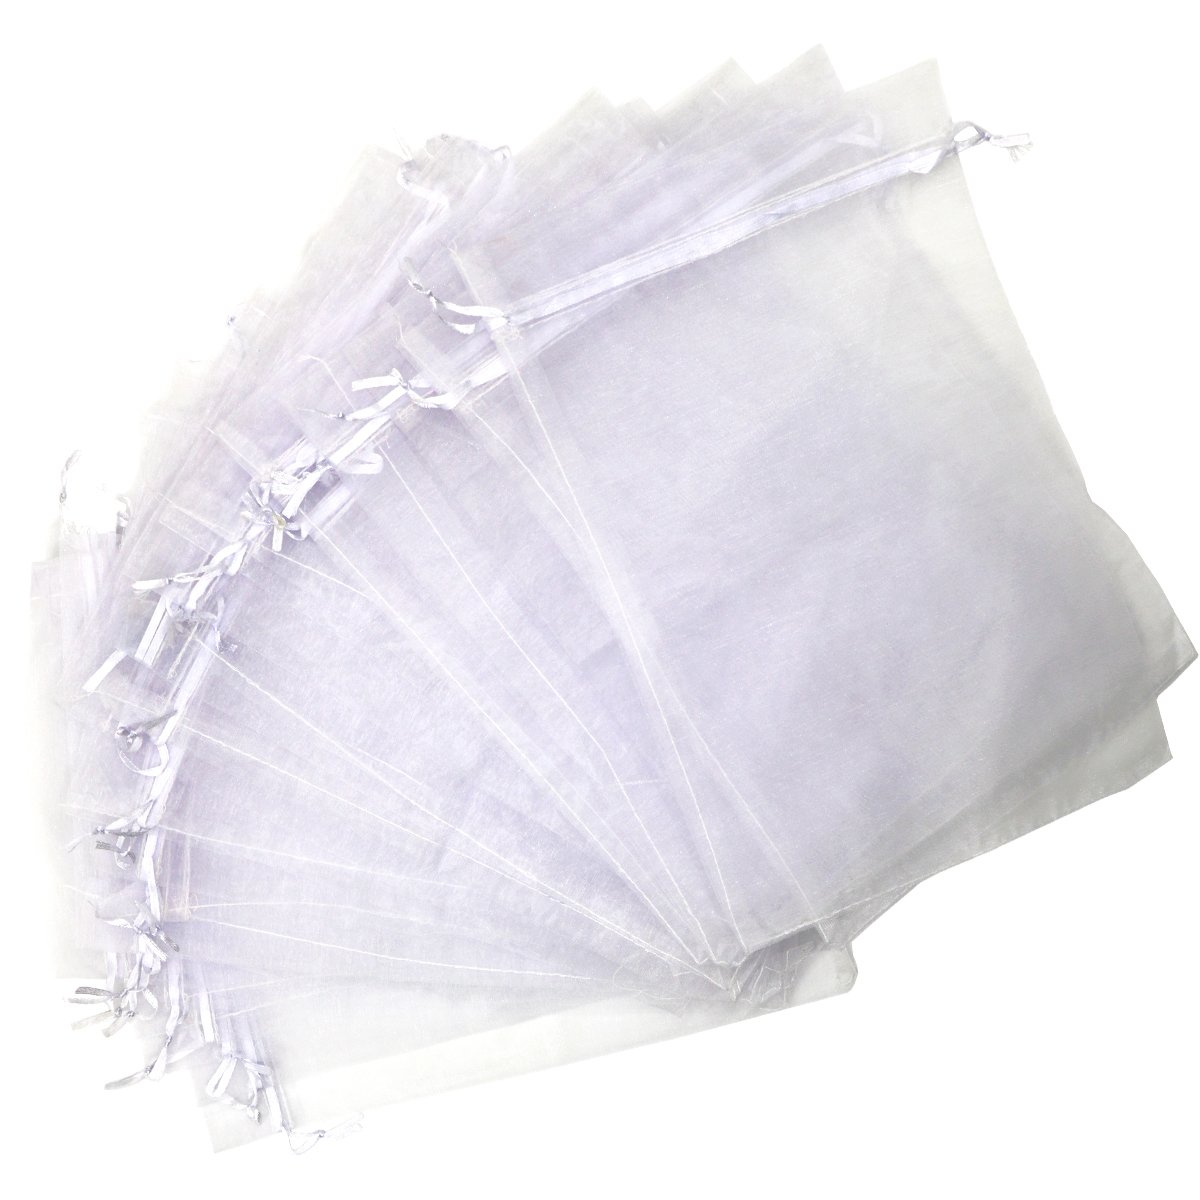 Kebinfen® 25 PCS 20x30cm White Organza Gift Bags for Wedding Favor Bags Jewellery Pouches